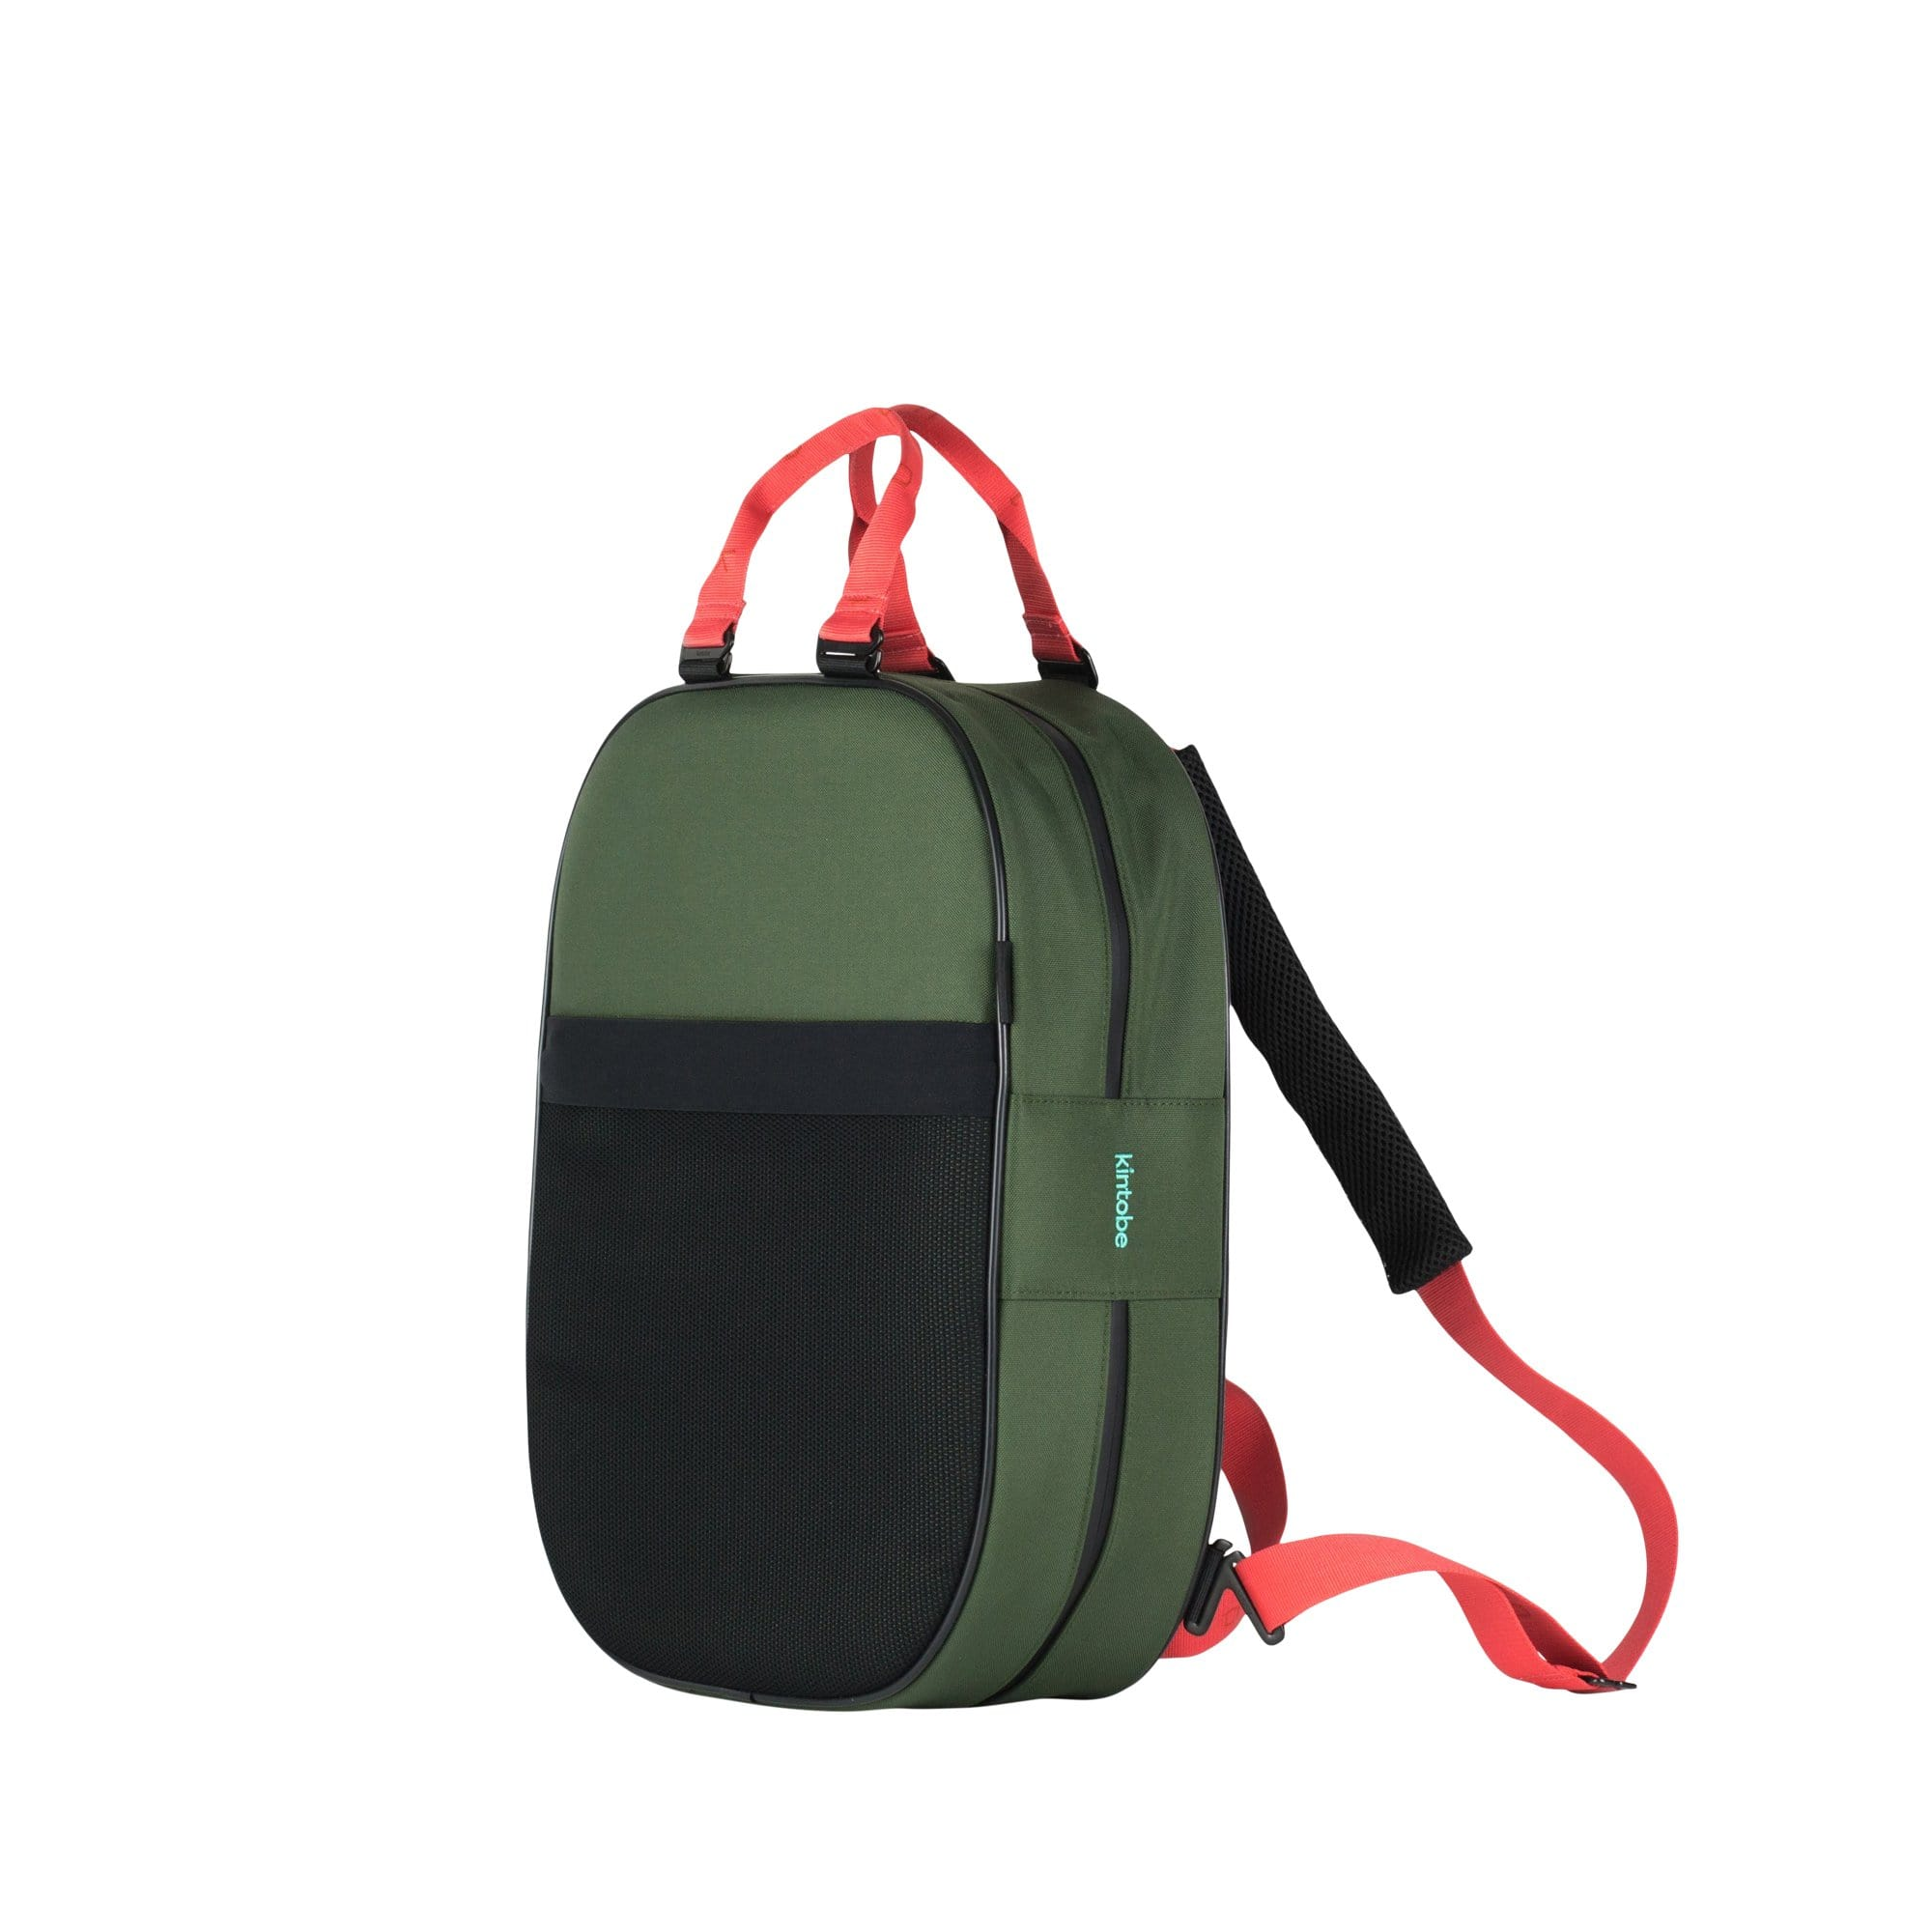 Kintobe Backpacks Coral Straps + Green Backpack